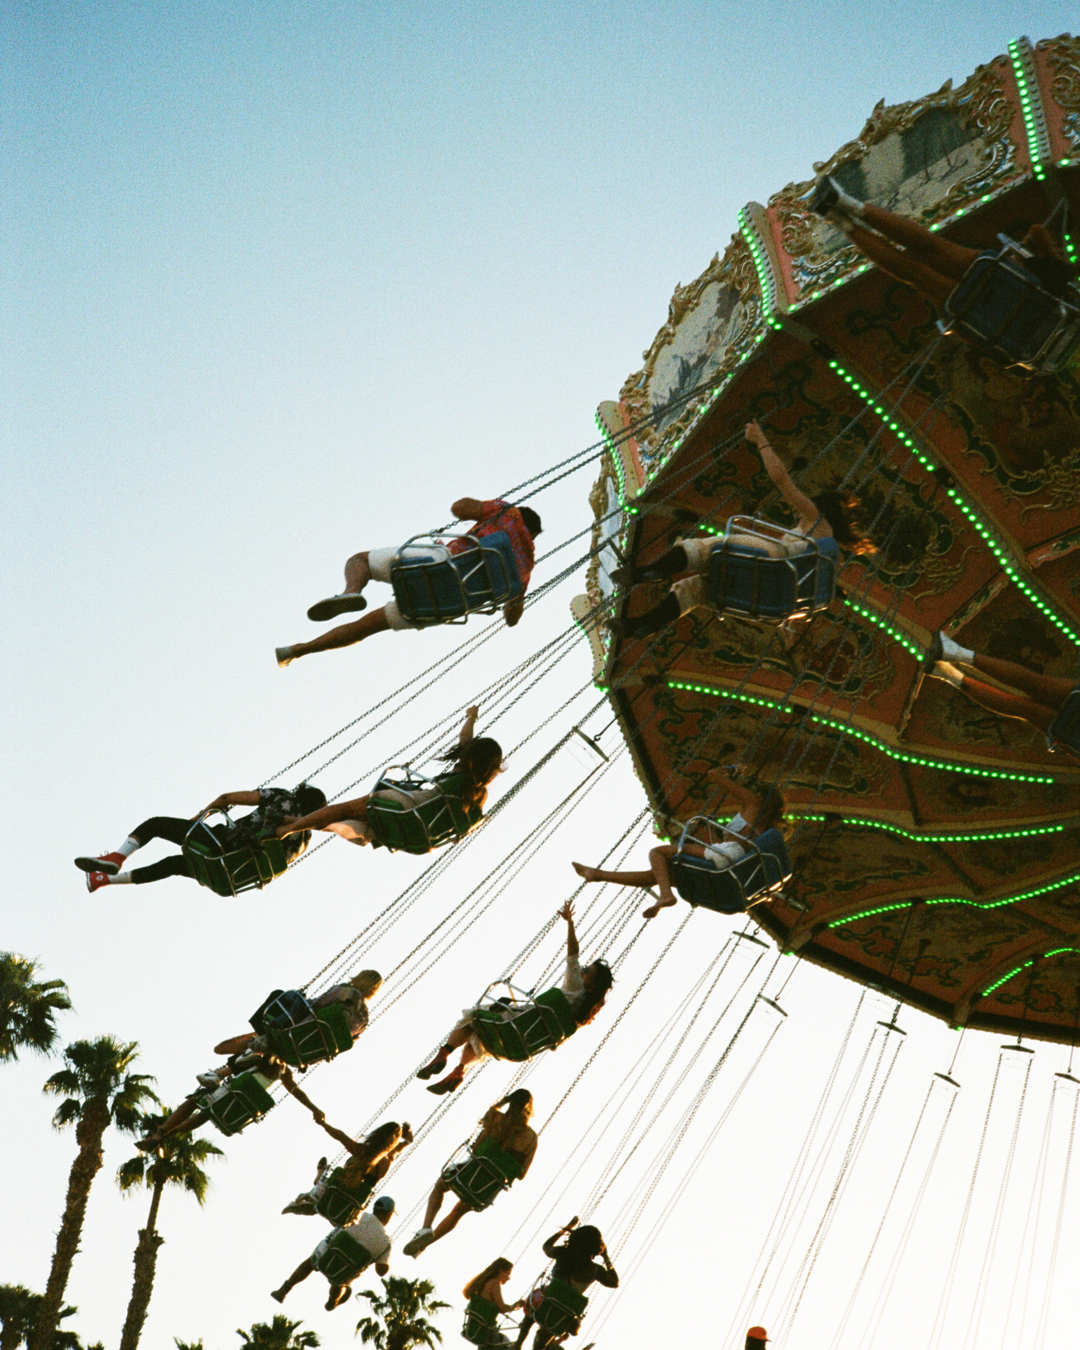 forgottenframes-captainscamera-captainbarto-adambartoshesky-photo-lilaflowers-cariflowers-myleshamilton-coachella-35mm-film-california-music-festival-april-201920190416_8846.jpg